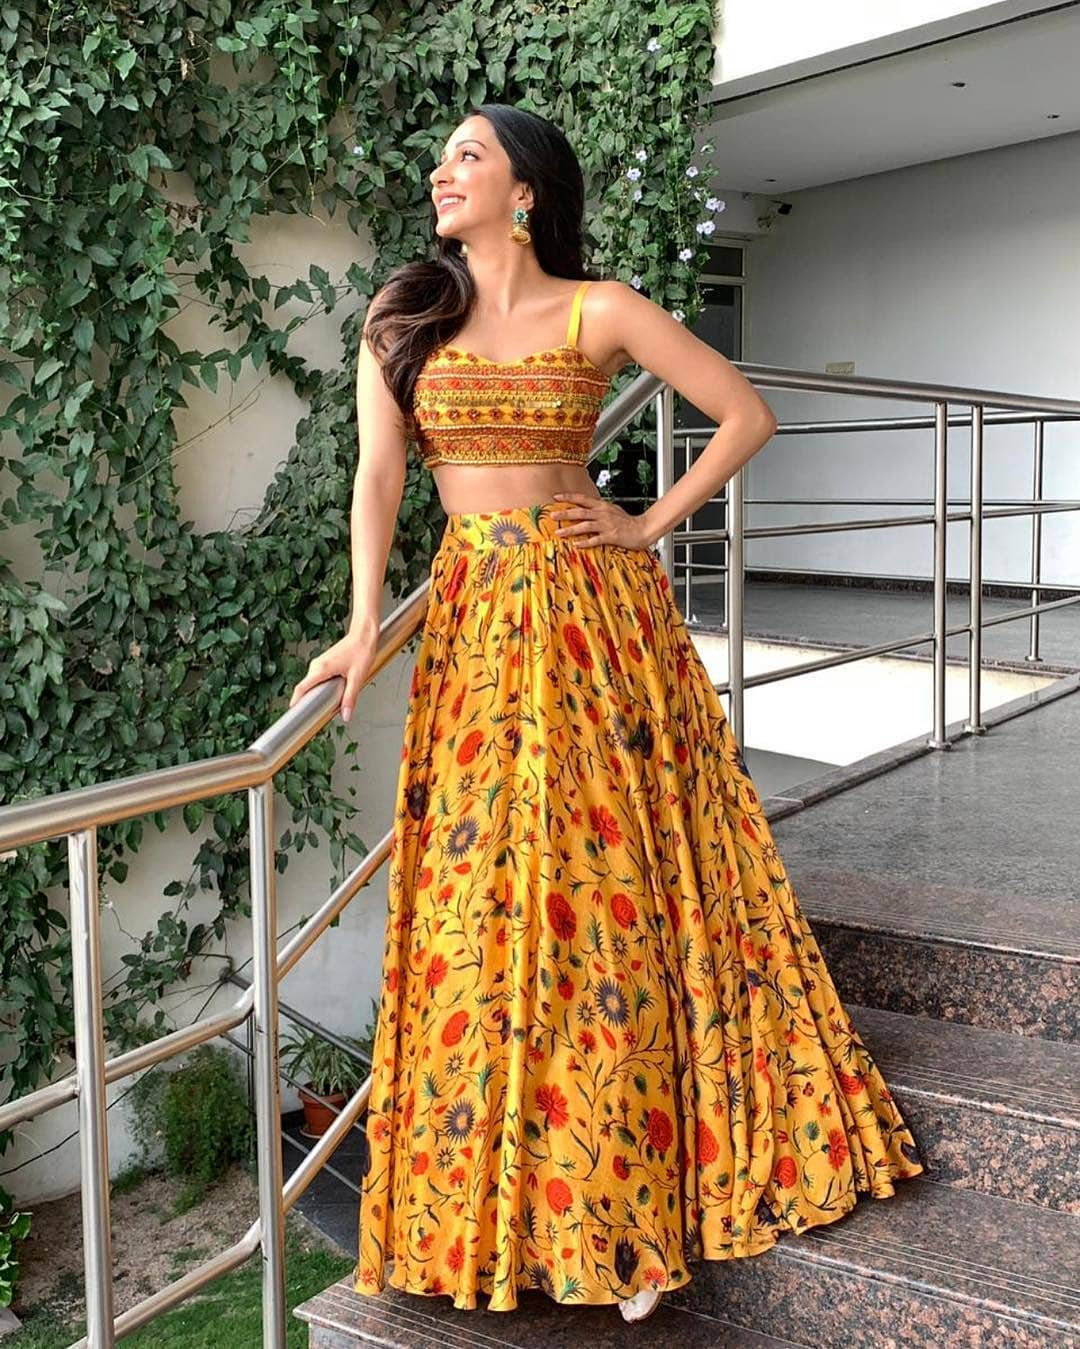 Unique Indian Wedding Dress Ideas For The Sister Of The Bride Spring Summer Weddings And Trends